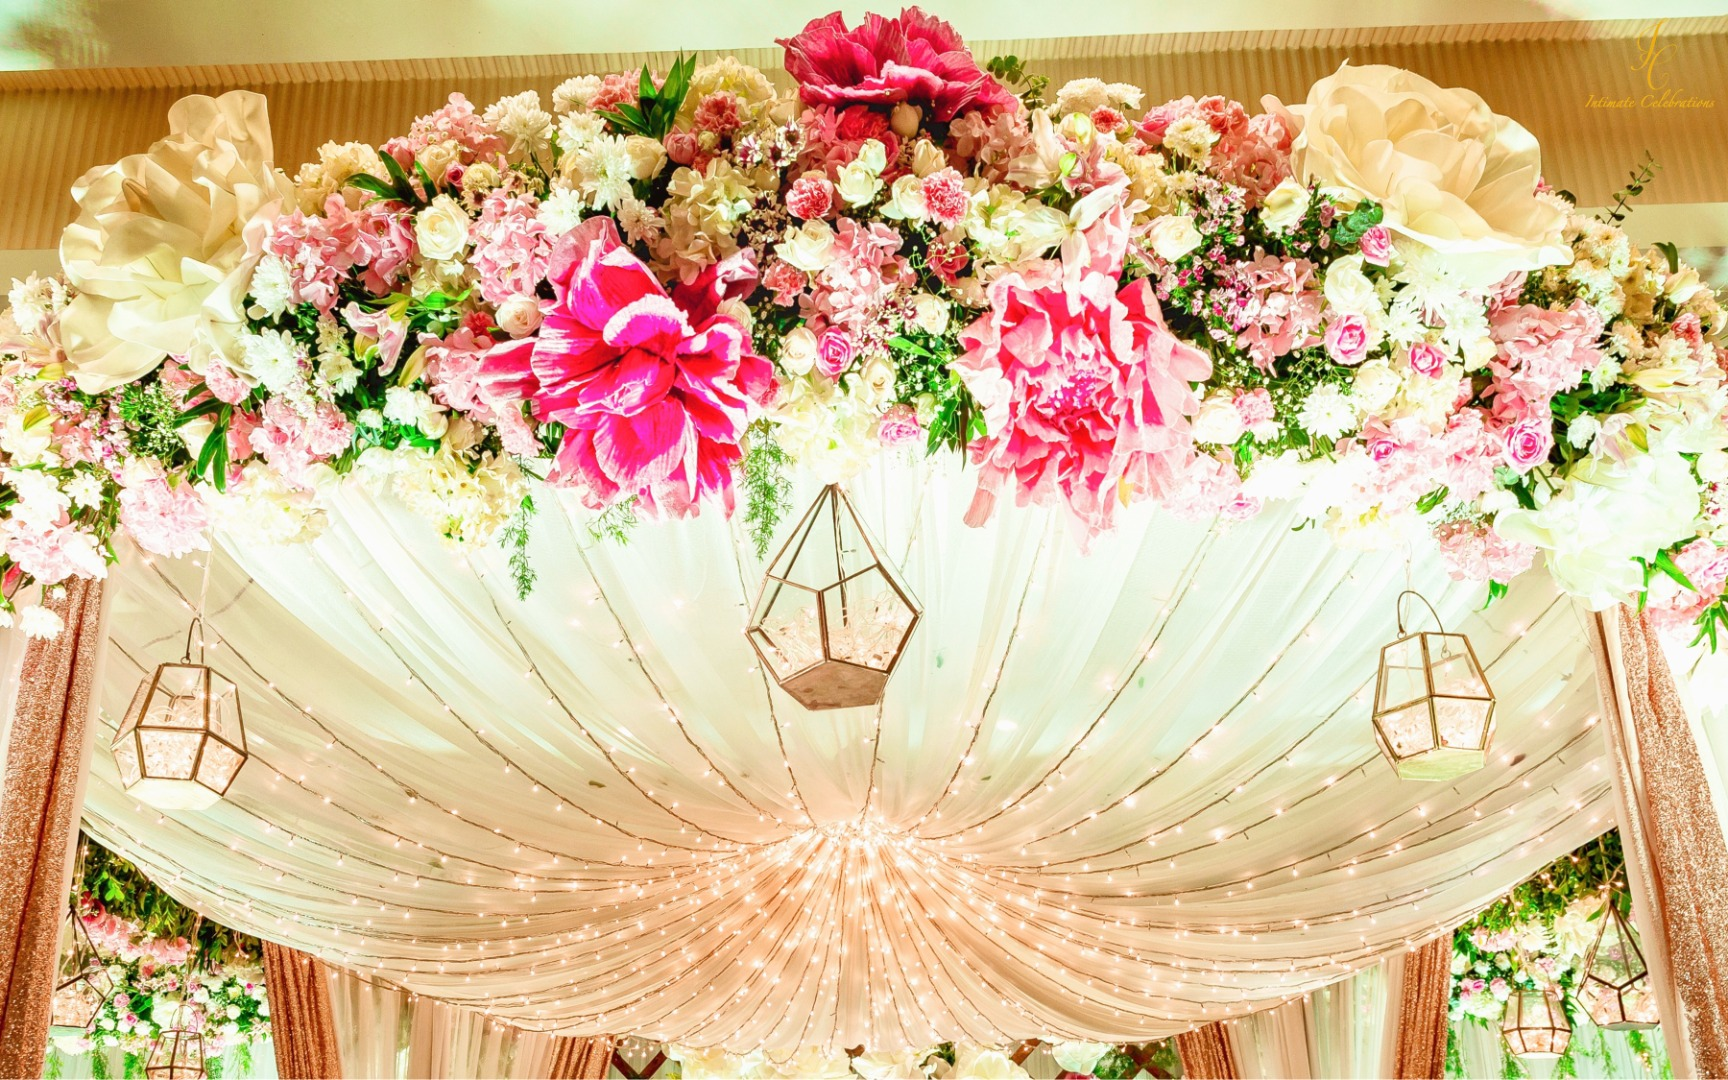 pastel pink decor with floral ceiling